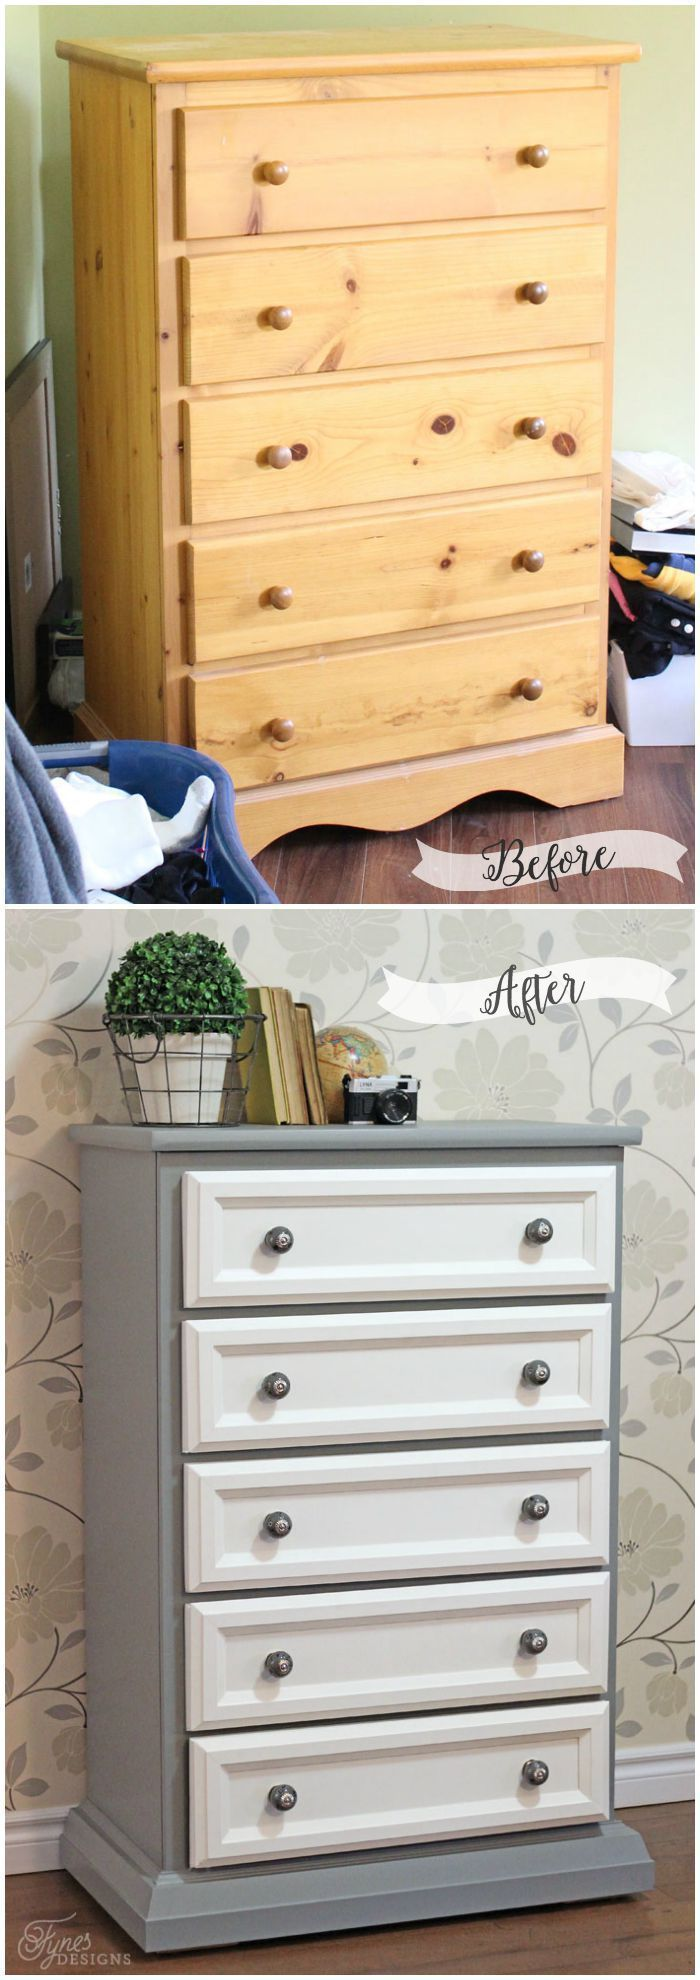 Paint For Bedroom Furniture 1000 Ideas About Refinished Bedroom Furniture On Pinterest